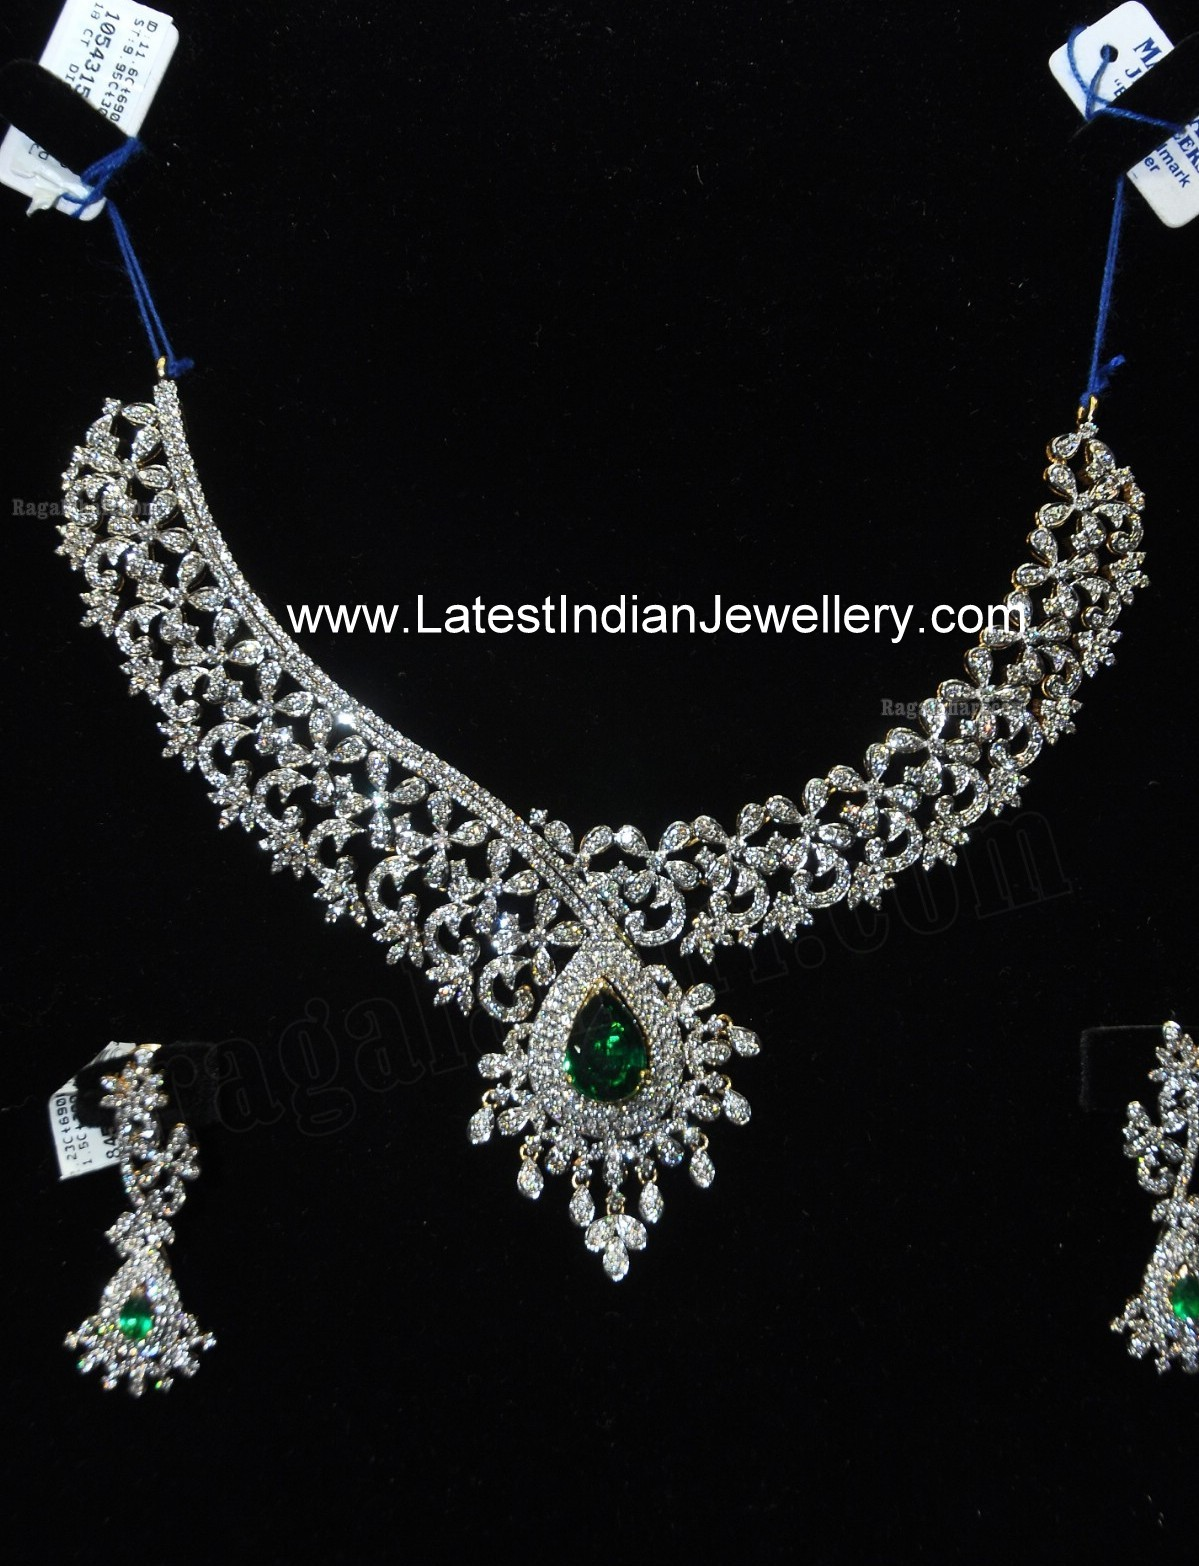 designer indian diamond necklace set with emeralds from